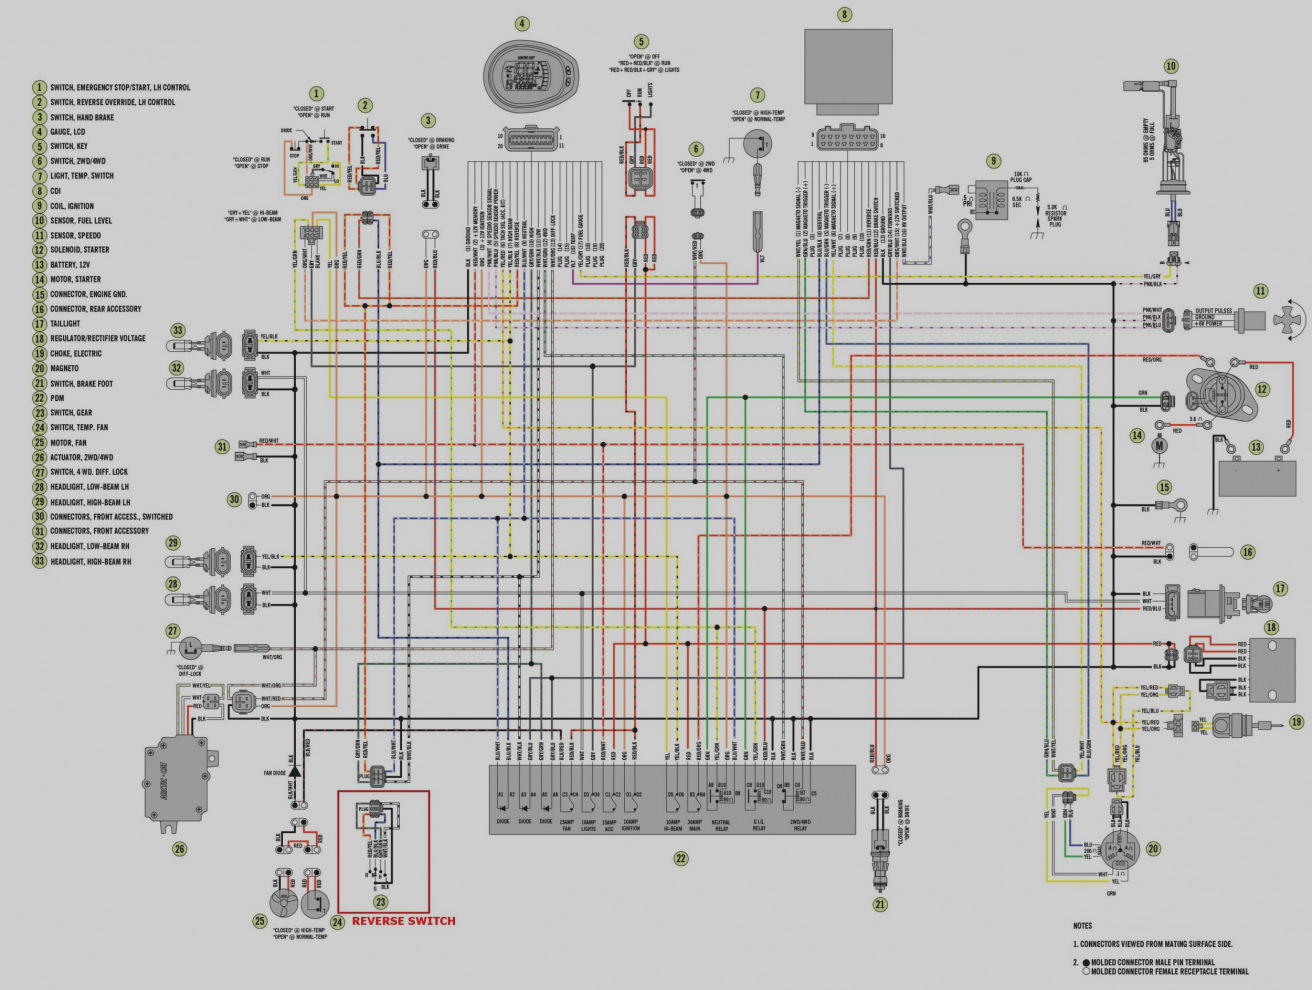 polaris rzr wiring diagram polaris rzr 900 wiring diagram wiring diagram data polaris rzr 1000 wiring diagram polaris rzr 900 wiring diagram wiring